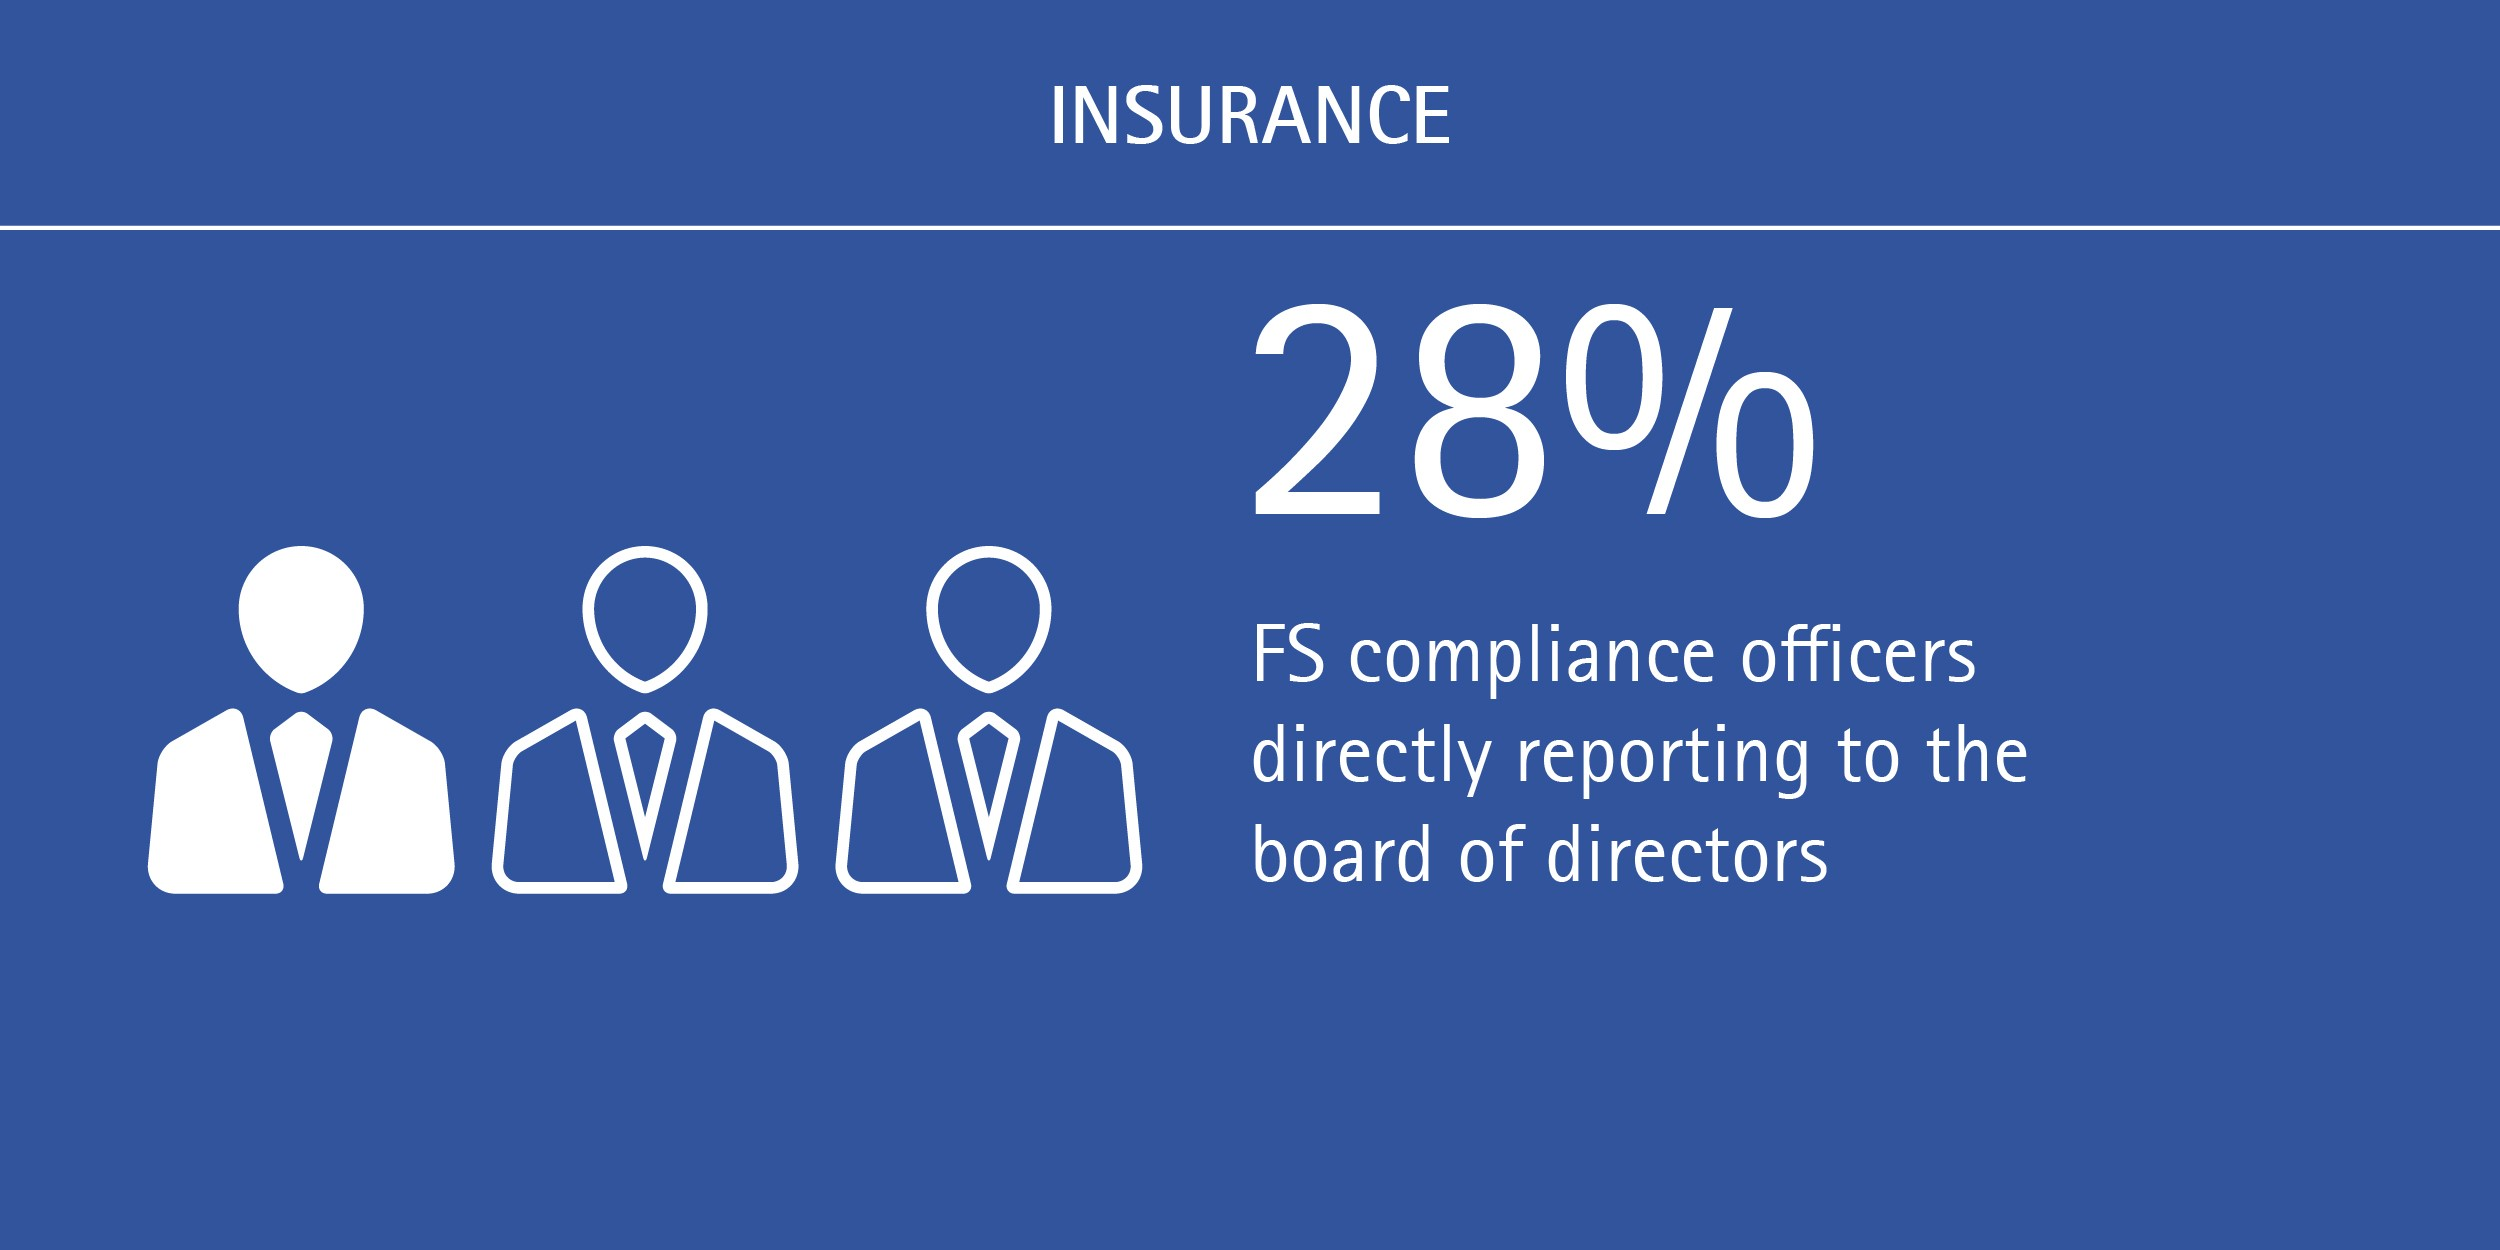 Shifts underway in FS compliance reporting lines: 28% of FS compliance officers directly report to the board of directors